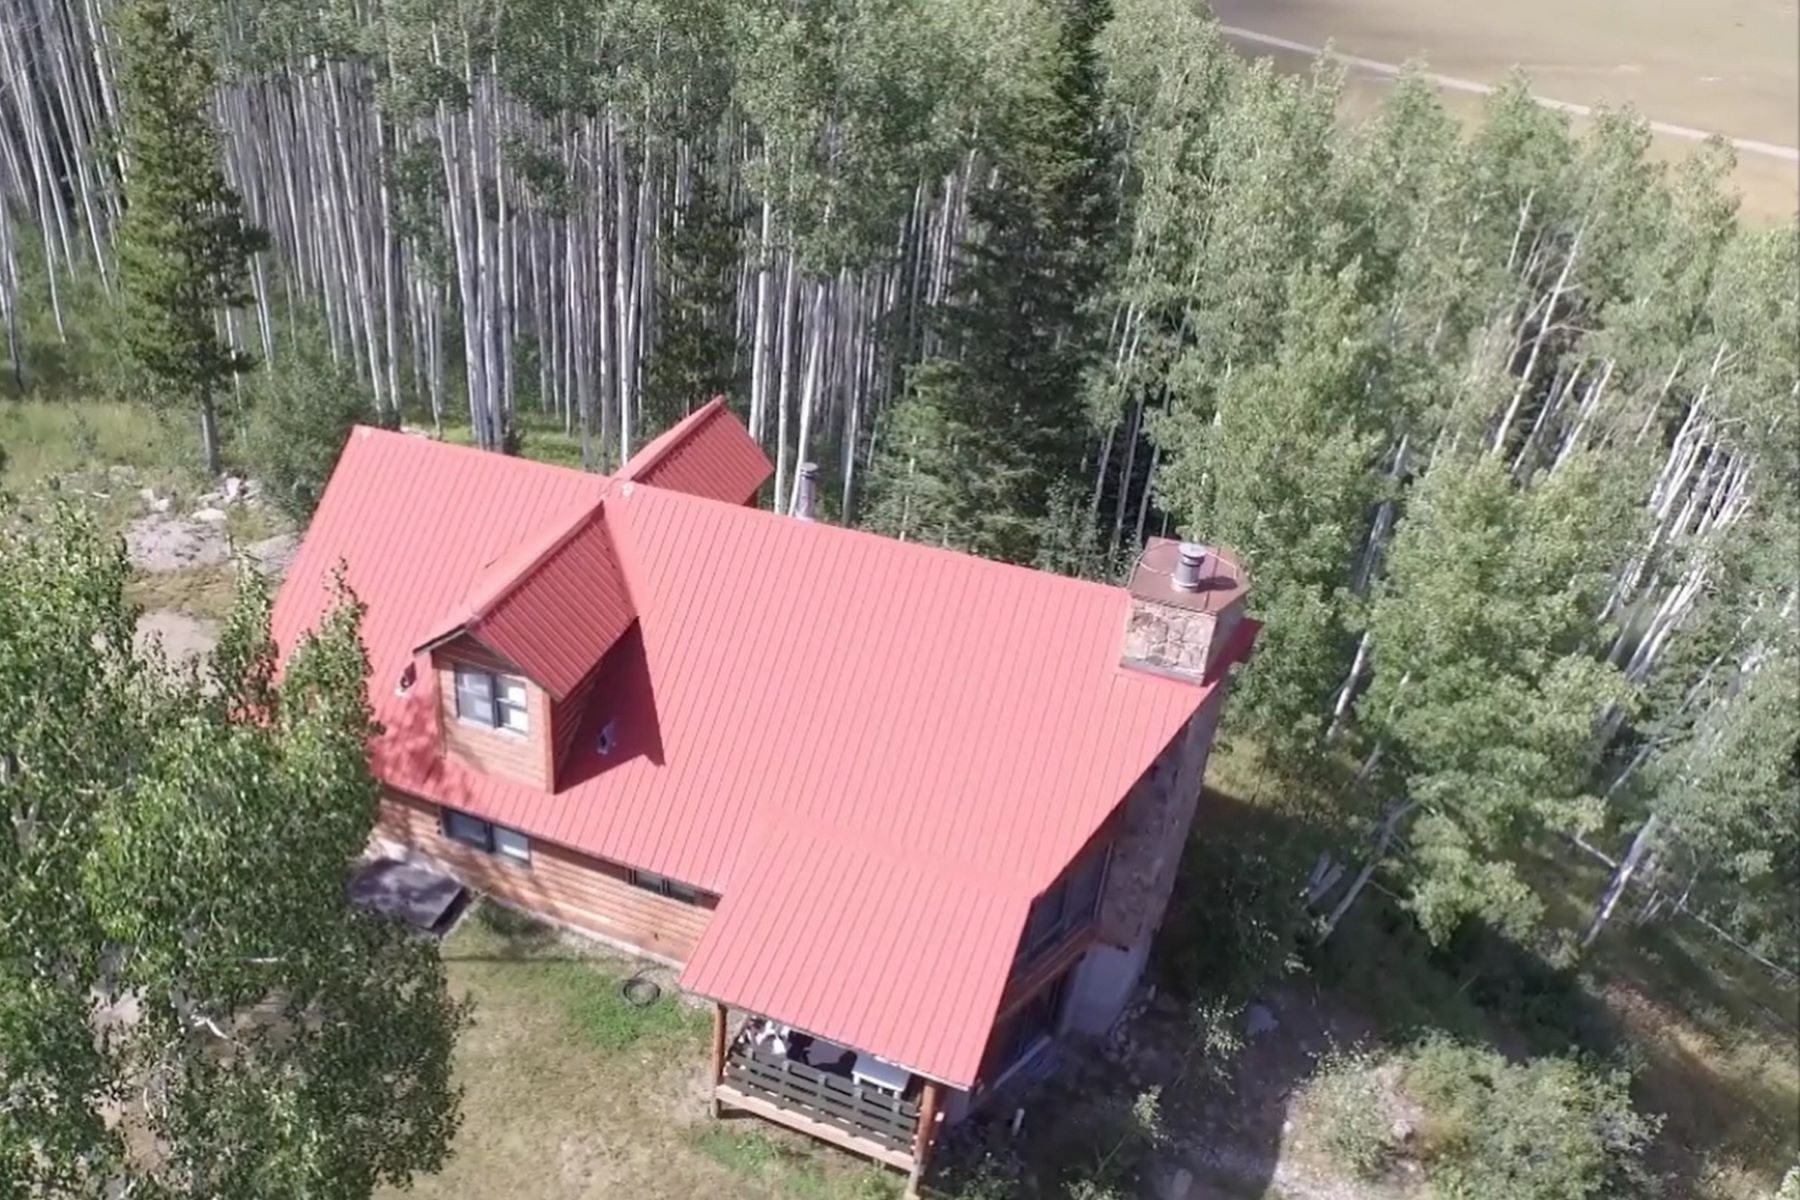 Villa per Vendita alle ore ULTIMATE OUTDOOR ENTHUSIAST RETREAT! 58755 County Road 62 Clark, Colorado, 80428 Stati Uniti